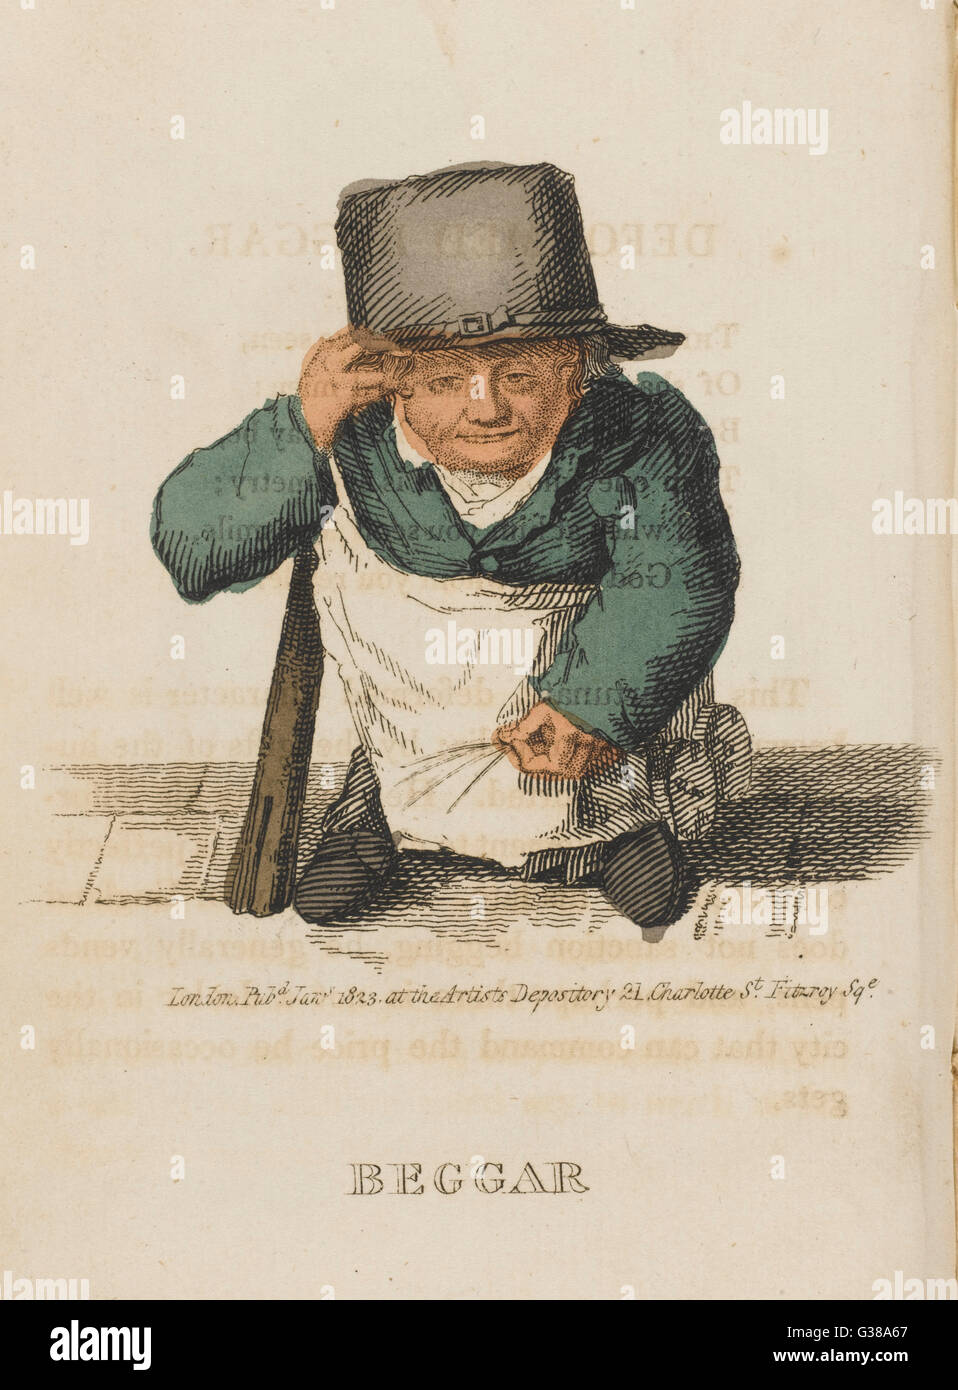 The deformed beggar often  sells pens as begging is not  sanctioned in England.        Date: 1823 - Stock Image